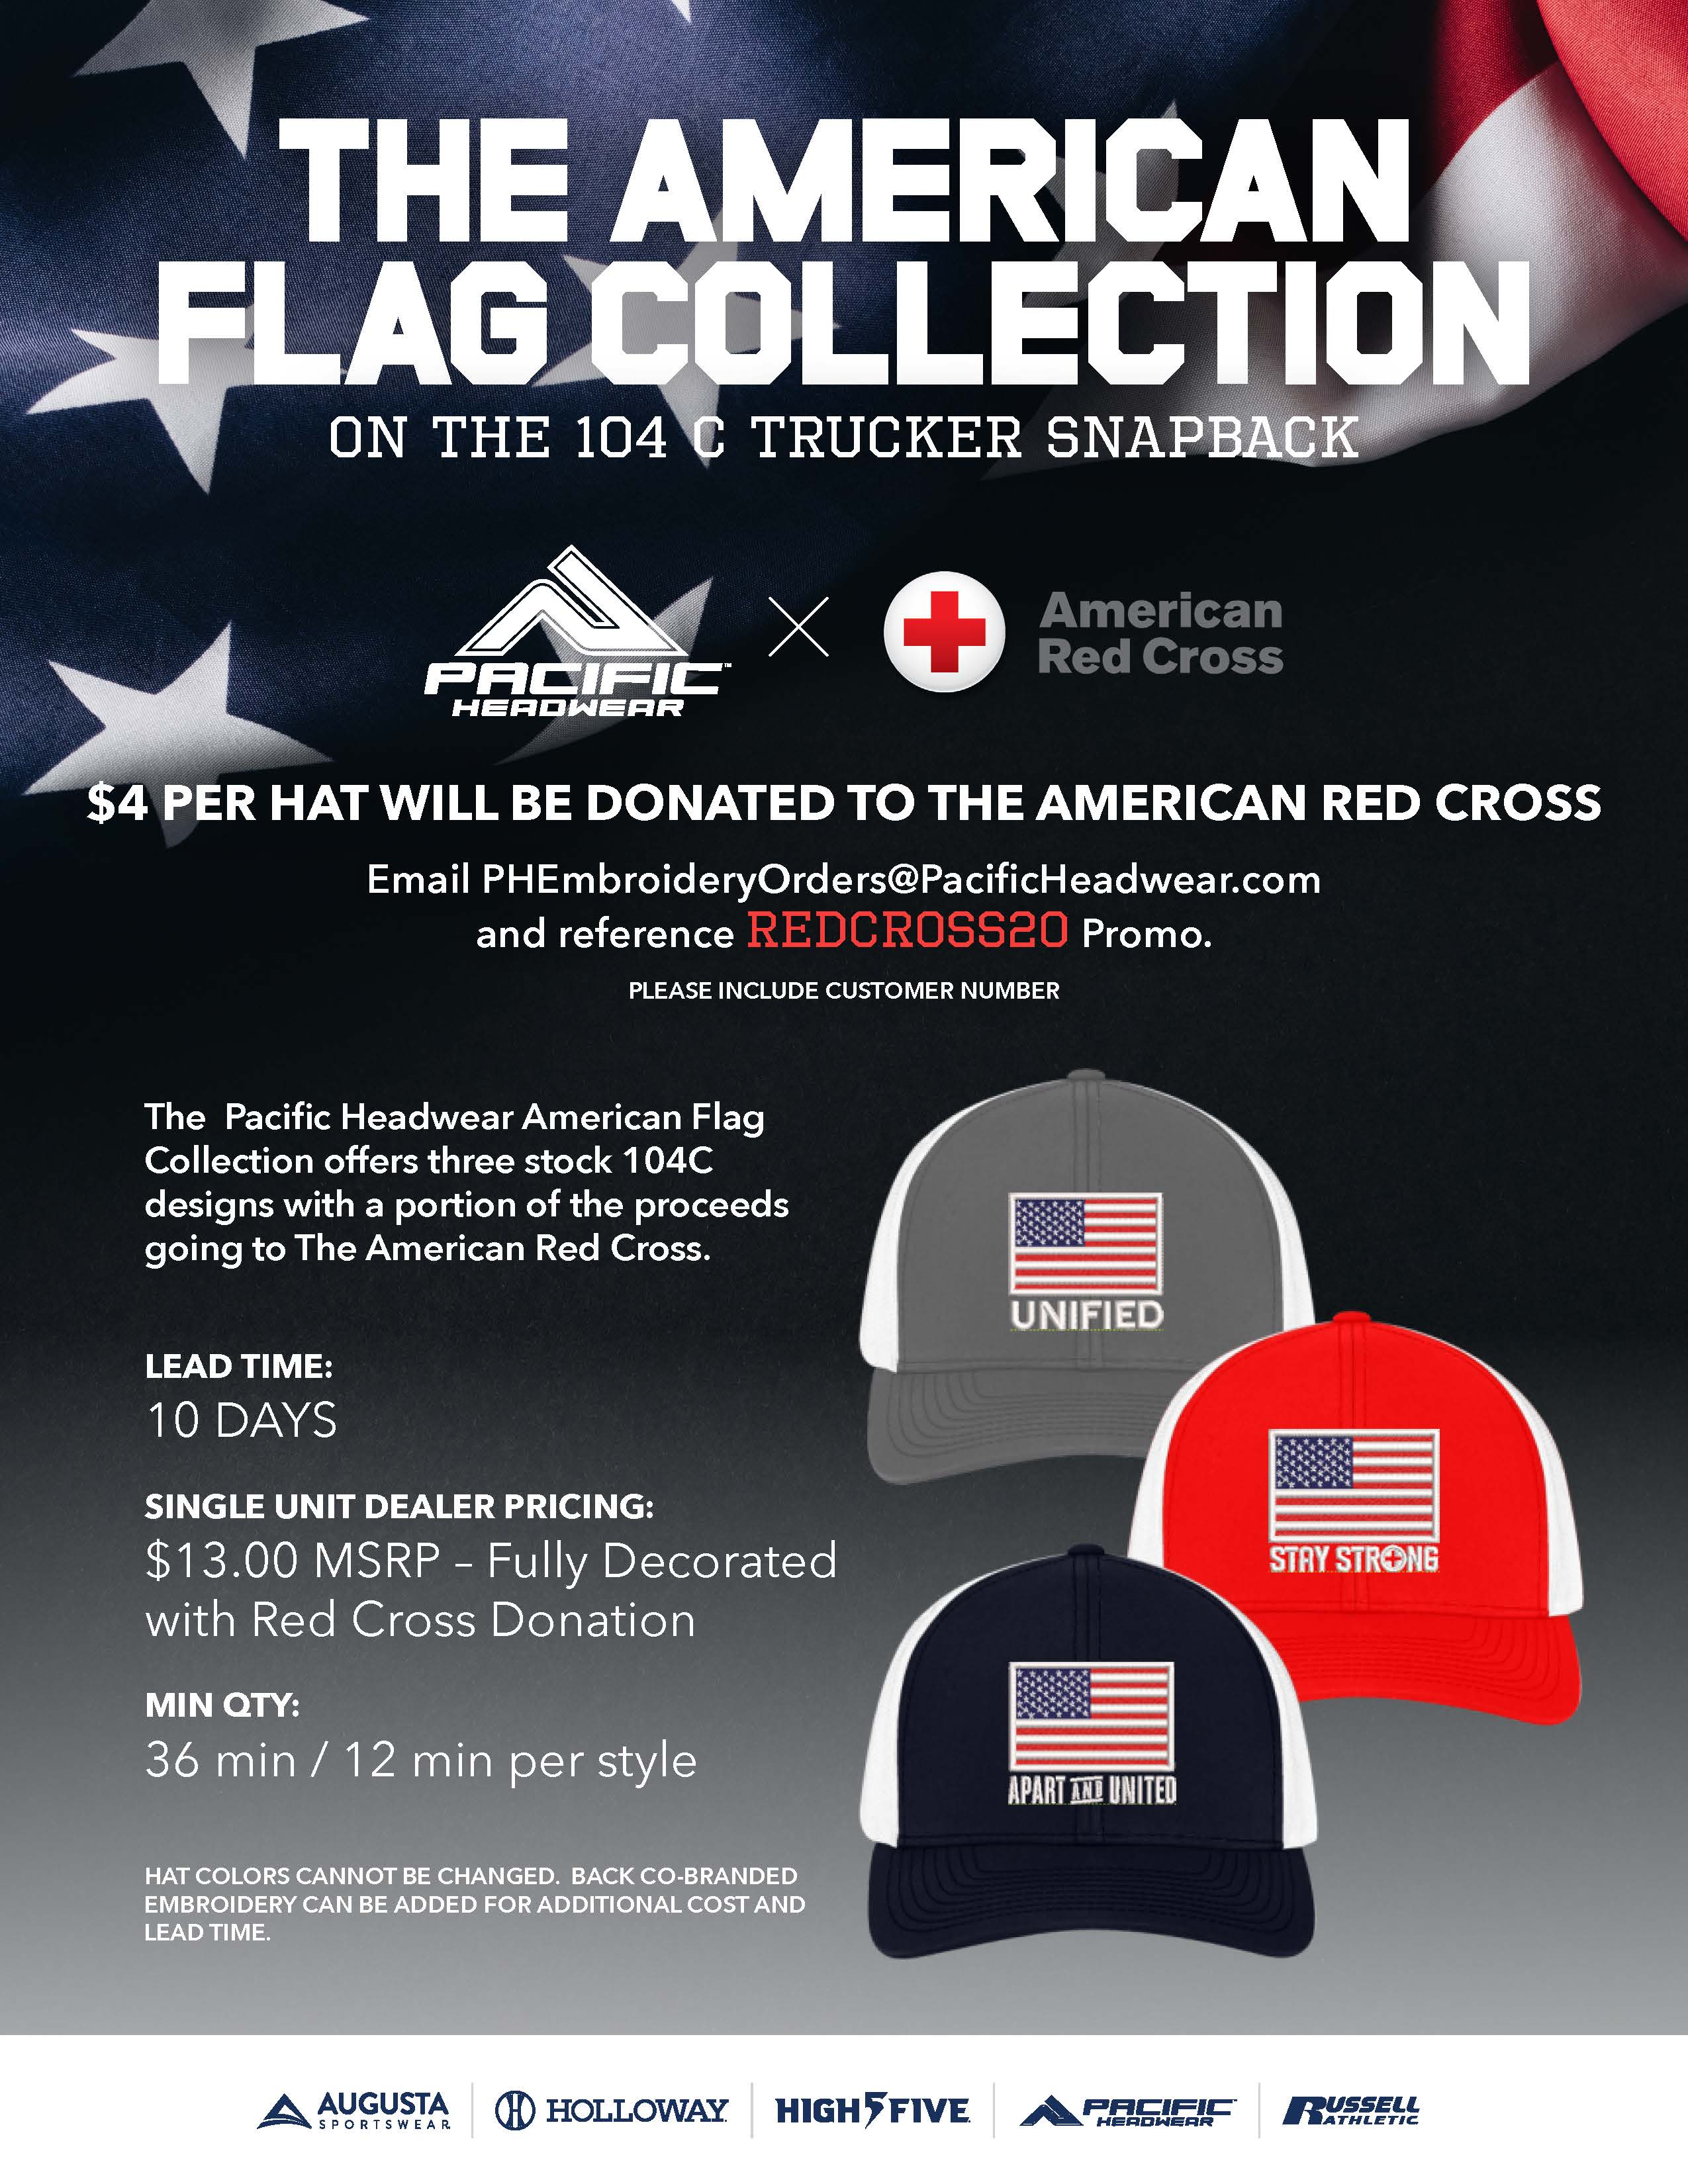 American Red Cross and Pacific Headwear team up to create the American Flag Collection.